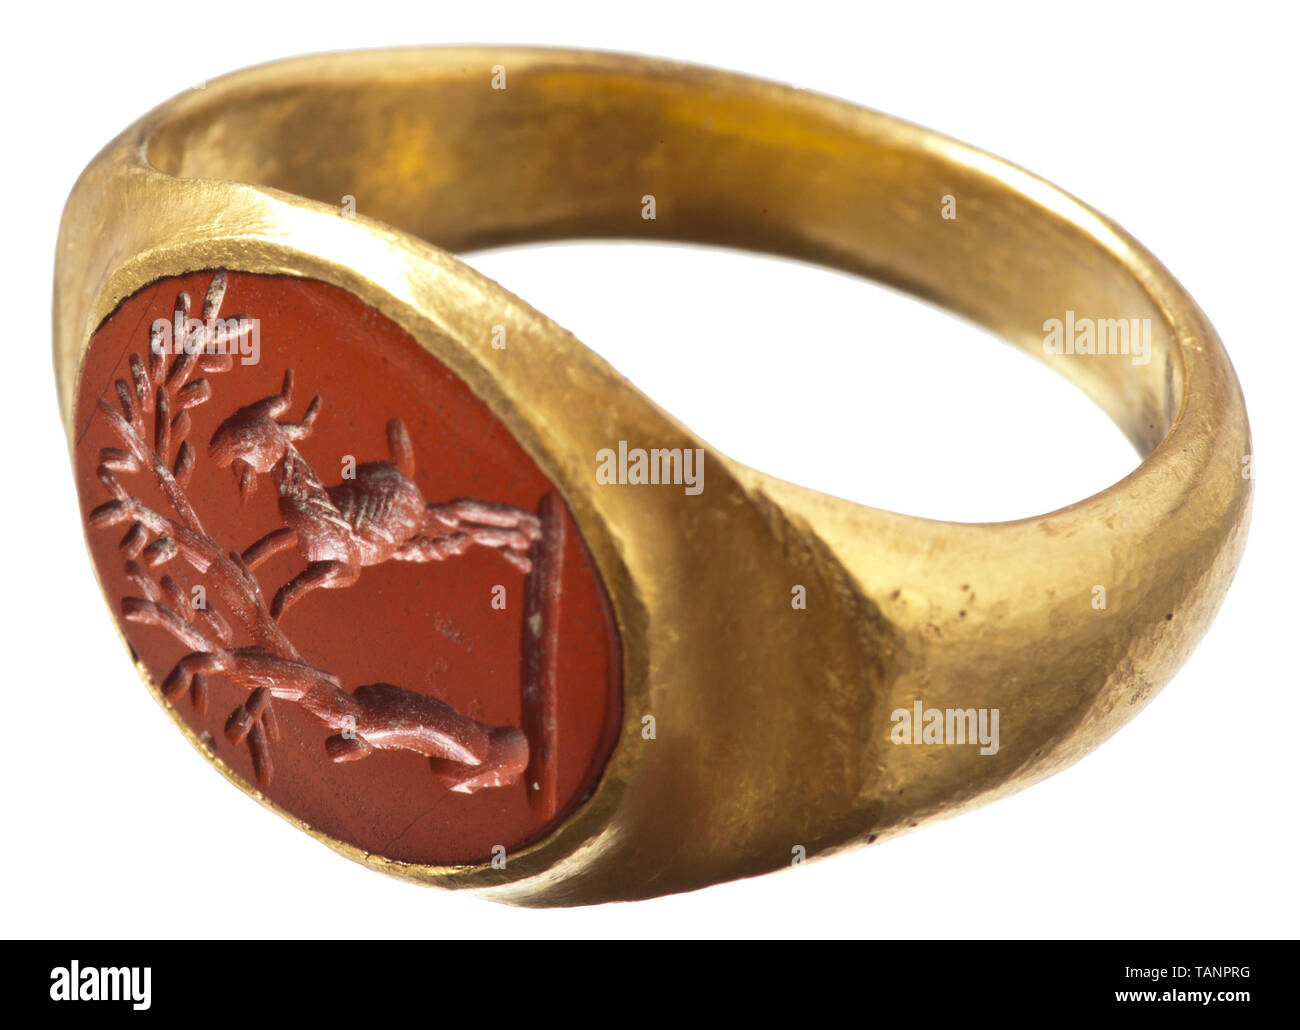 Ancient Roman Rings roman ring stock photos & roman ring stock images - alamy